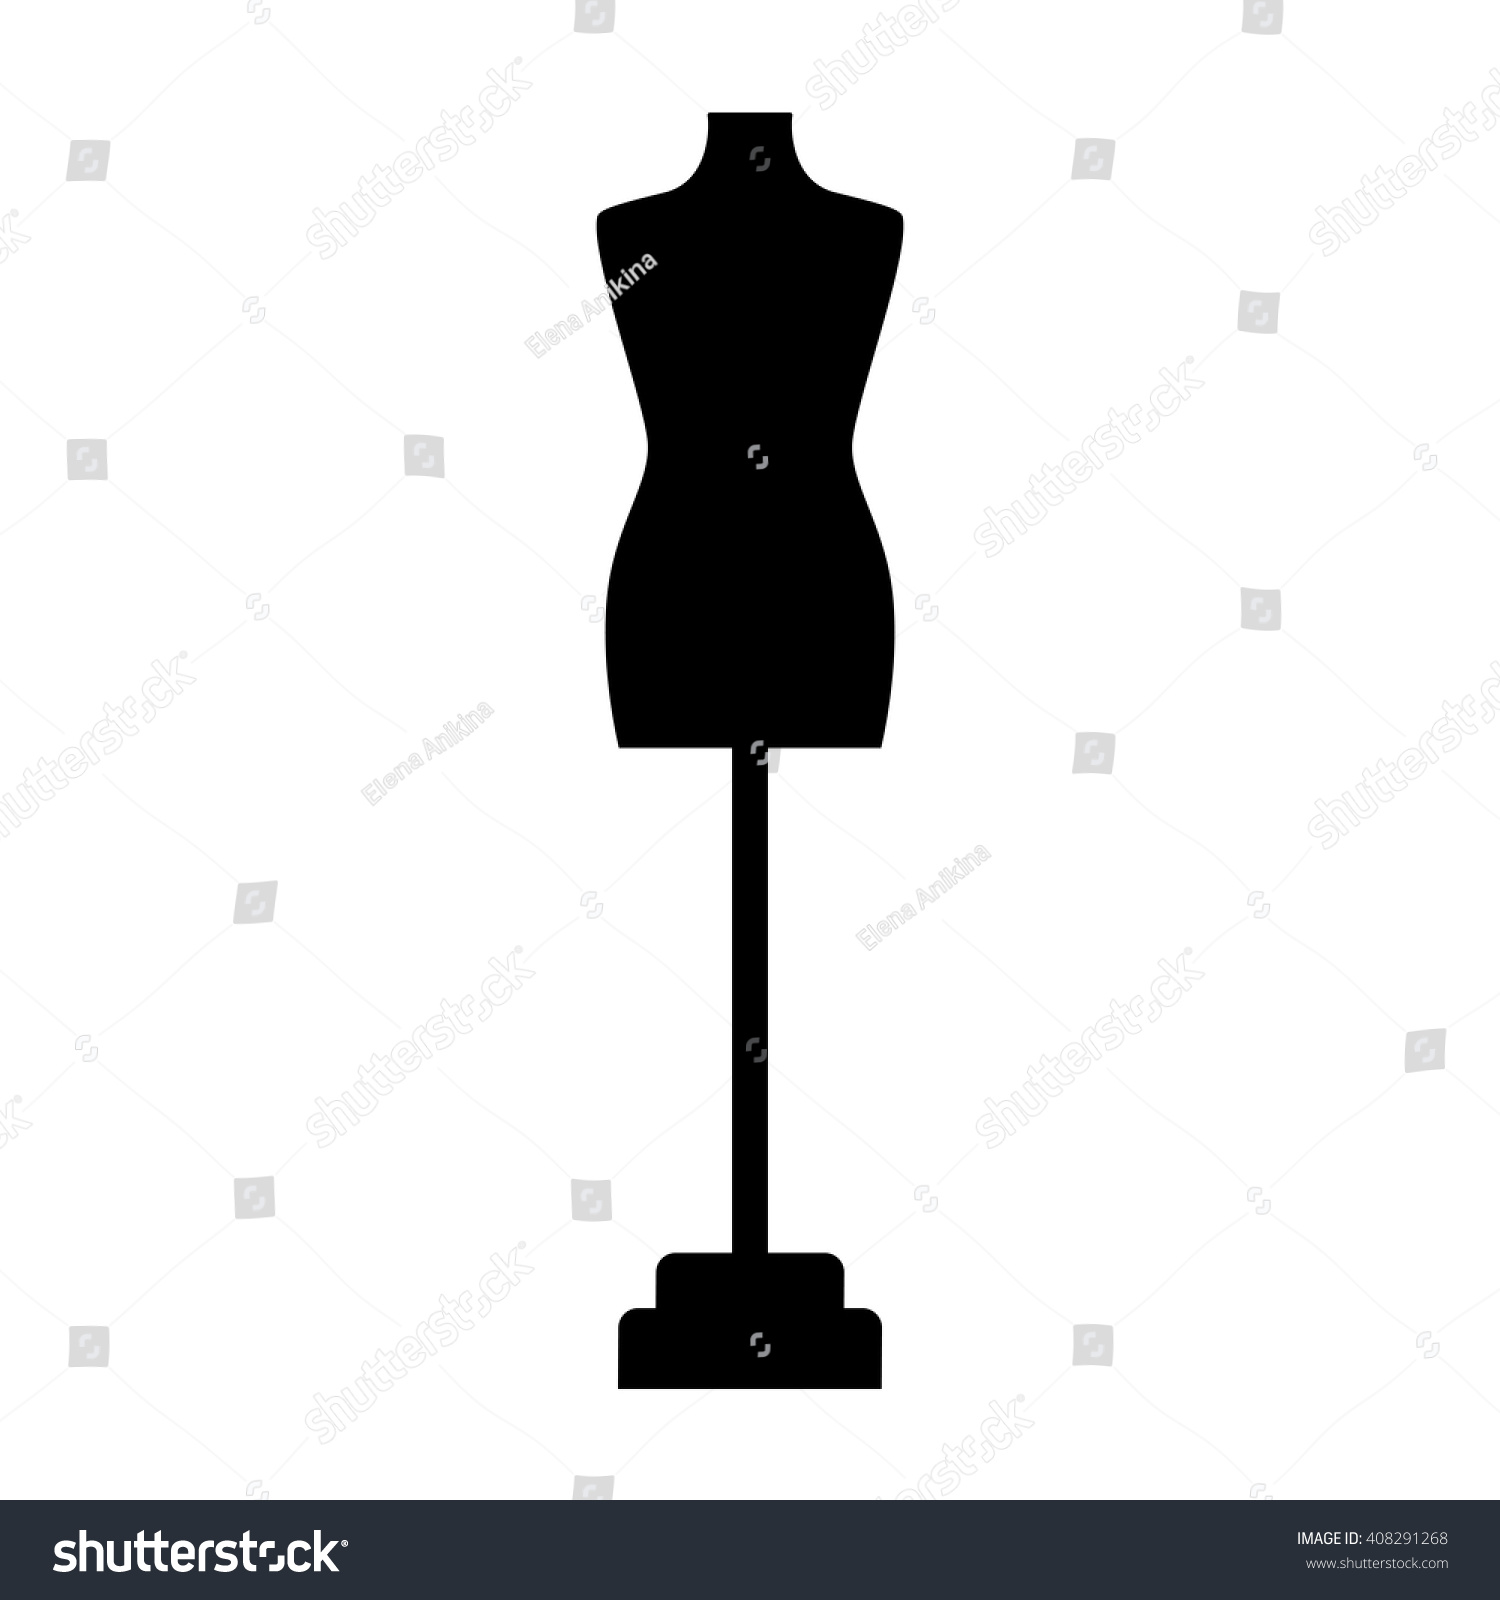 Tailor Dummy Fashion Icon On White Stock Vector 408291268 Shutterstock